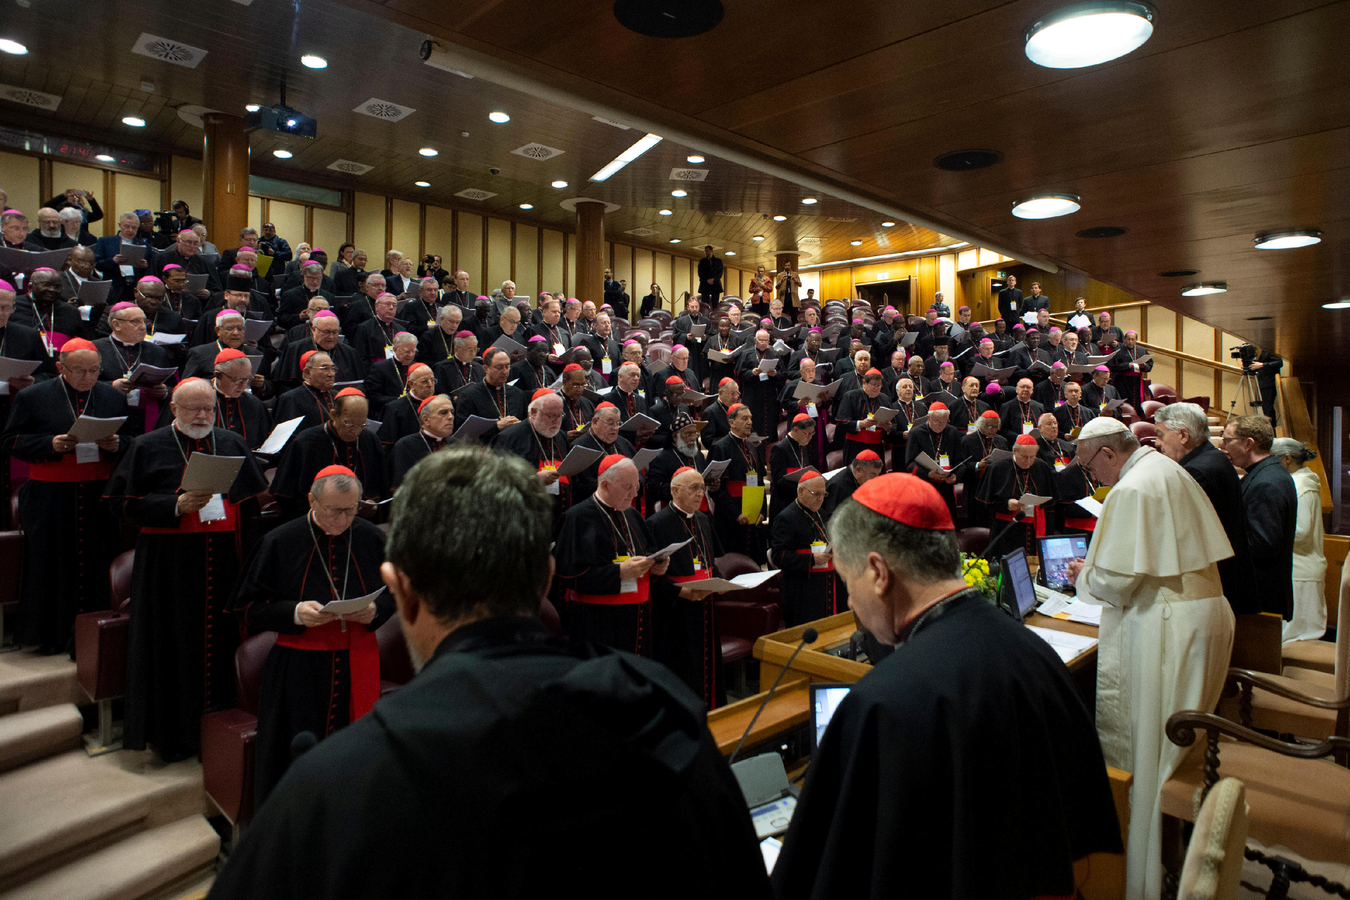 Pope Francis leads the opening session of the meeting on the protection of minors. (CNS photo/Vatican Media)